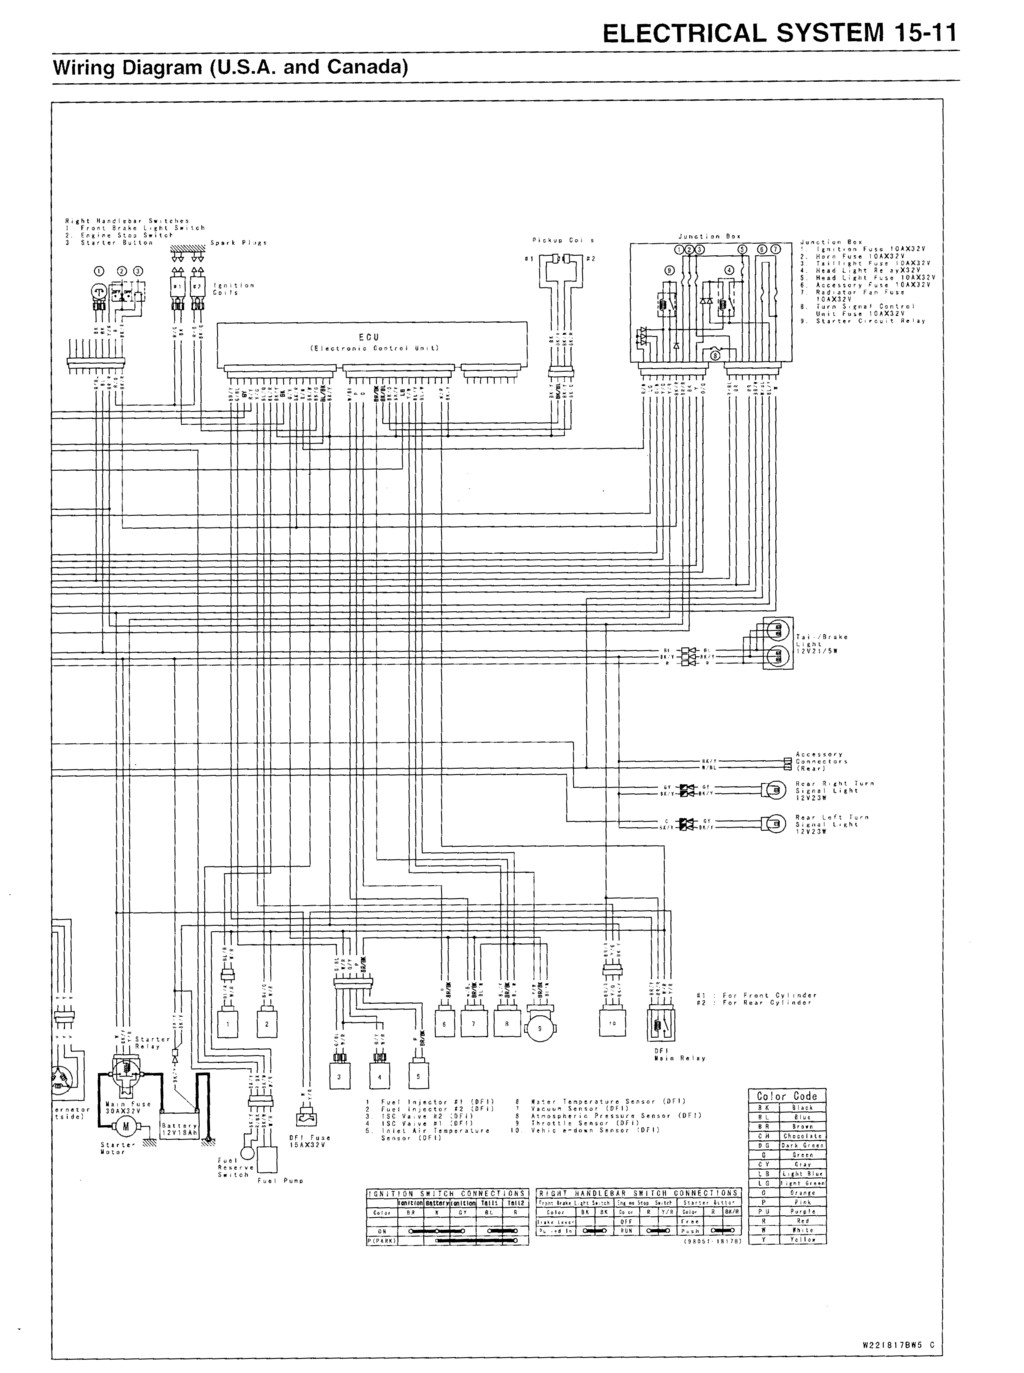 Kawasaki Vulcan Wiring Diagram - Wiring Data